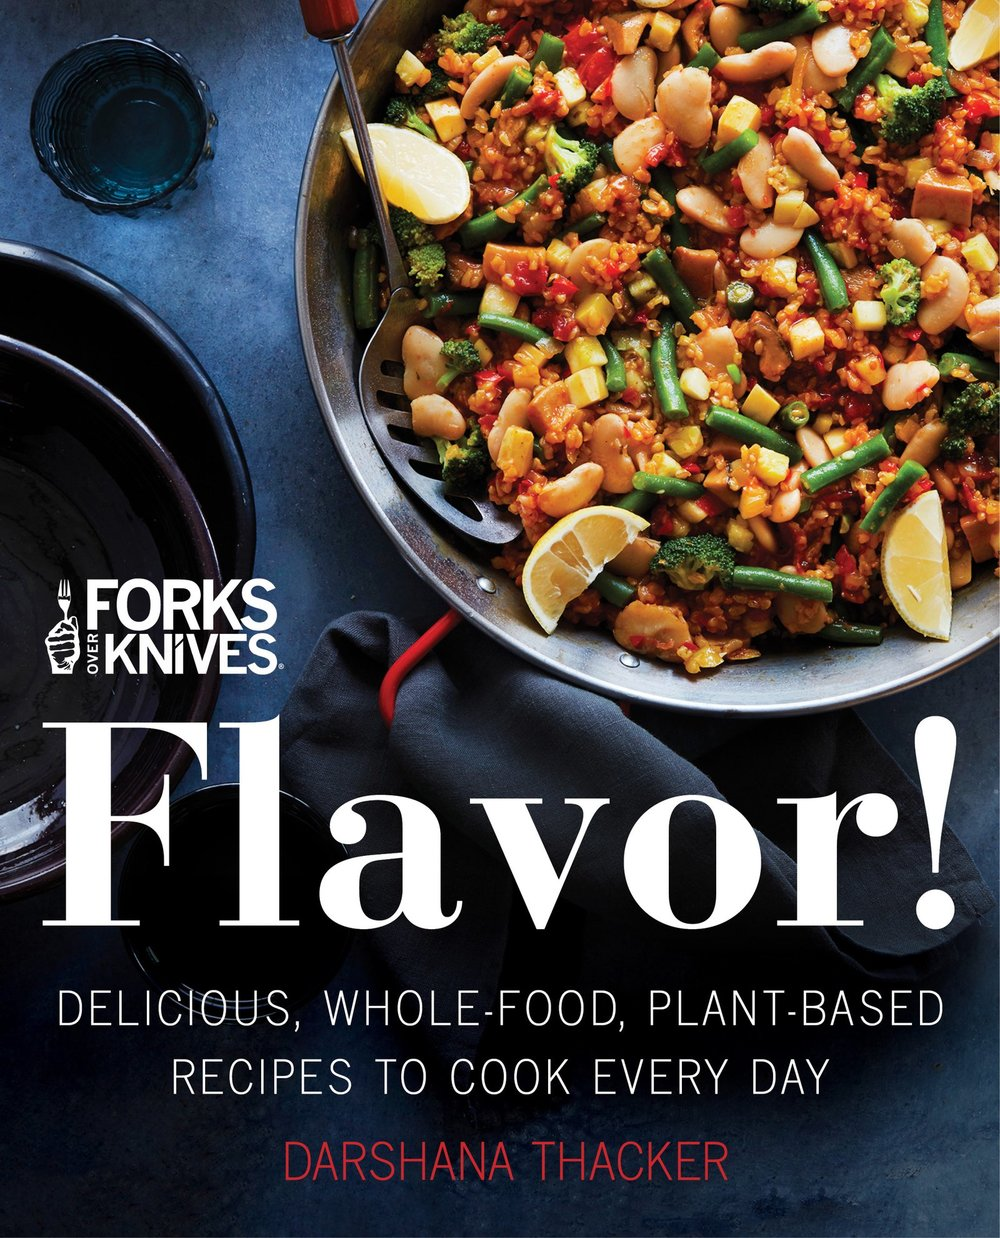 Forks Over Knives: Flavor  by Darshana Thacker